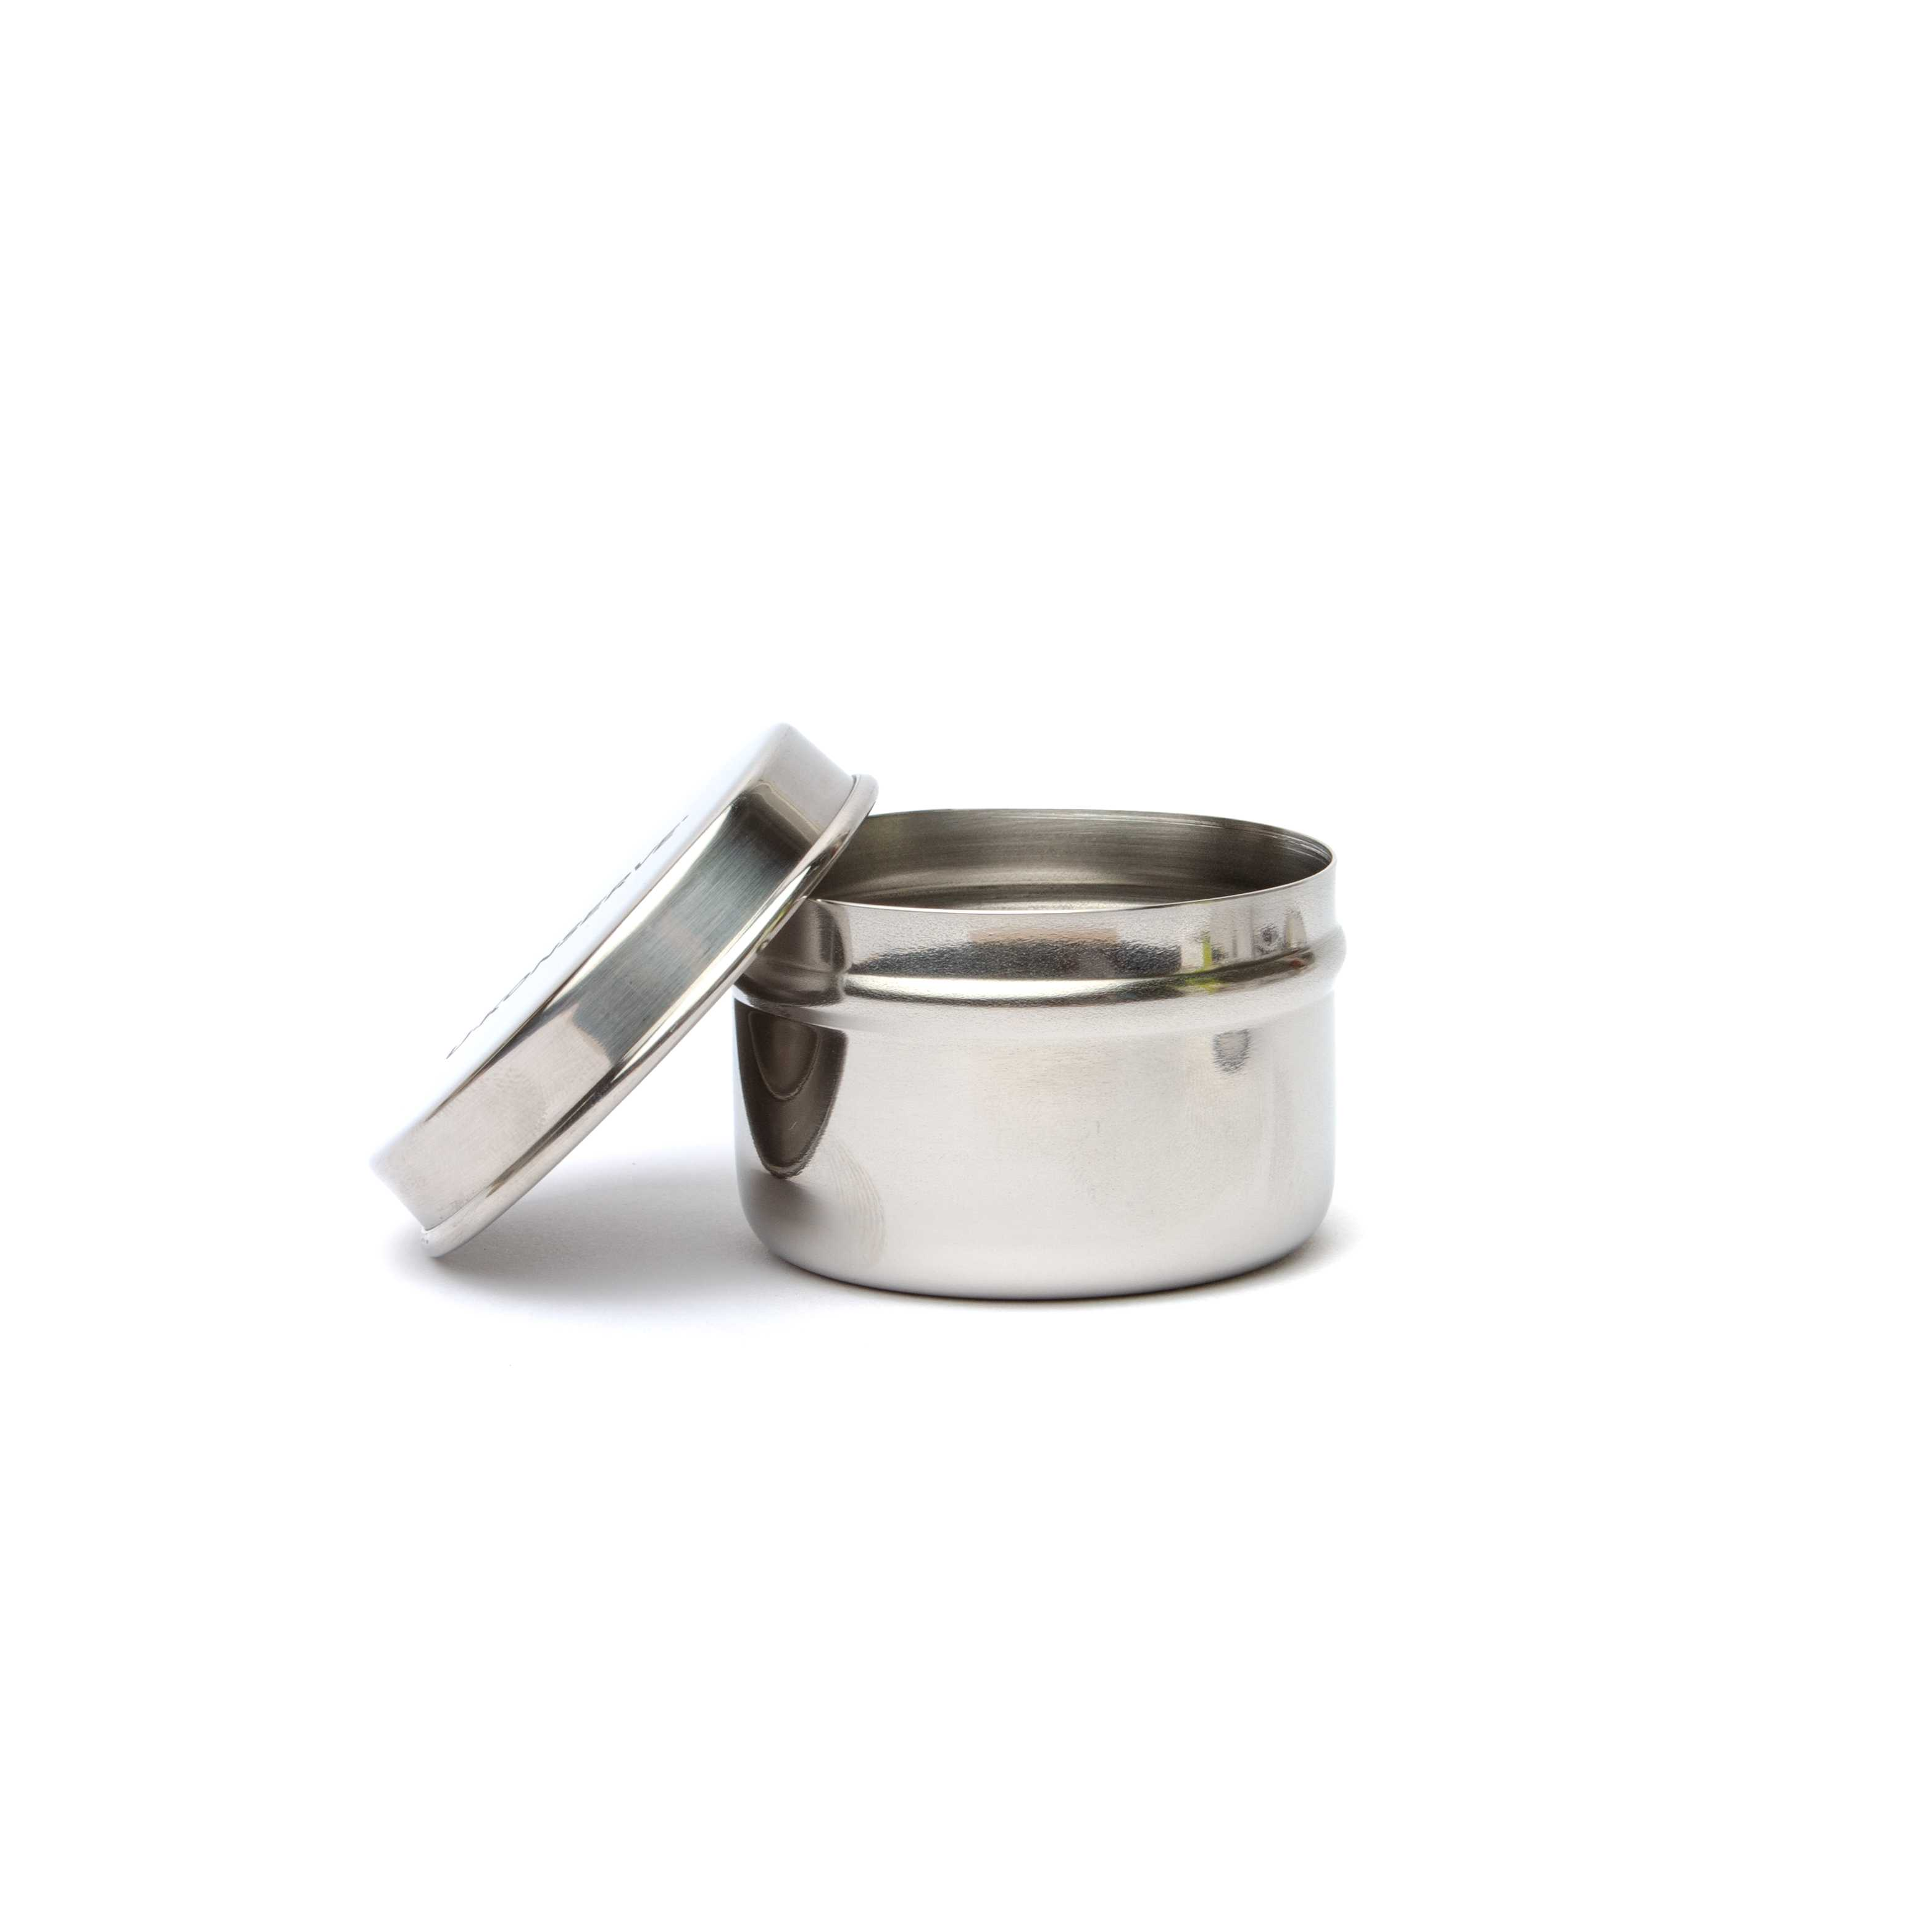 3 Mini Stainless Steel Containers